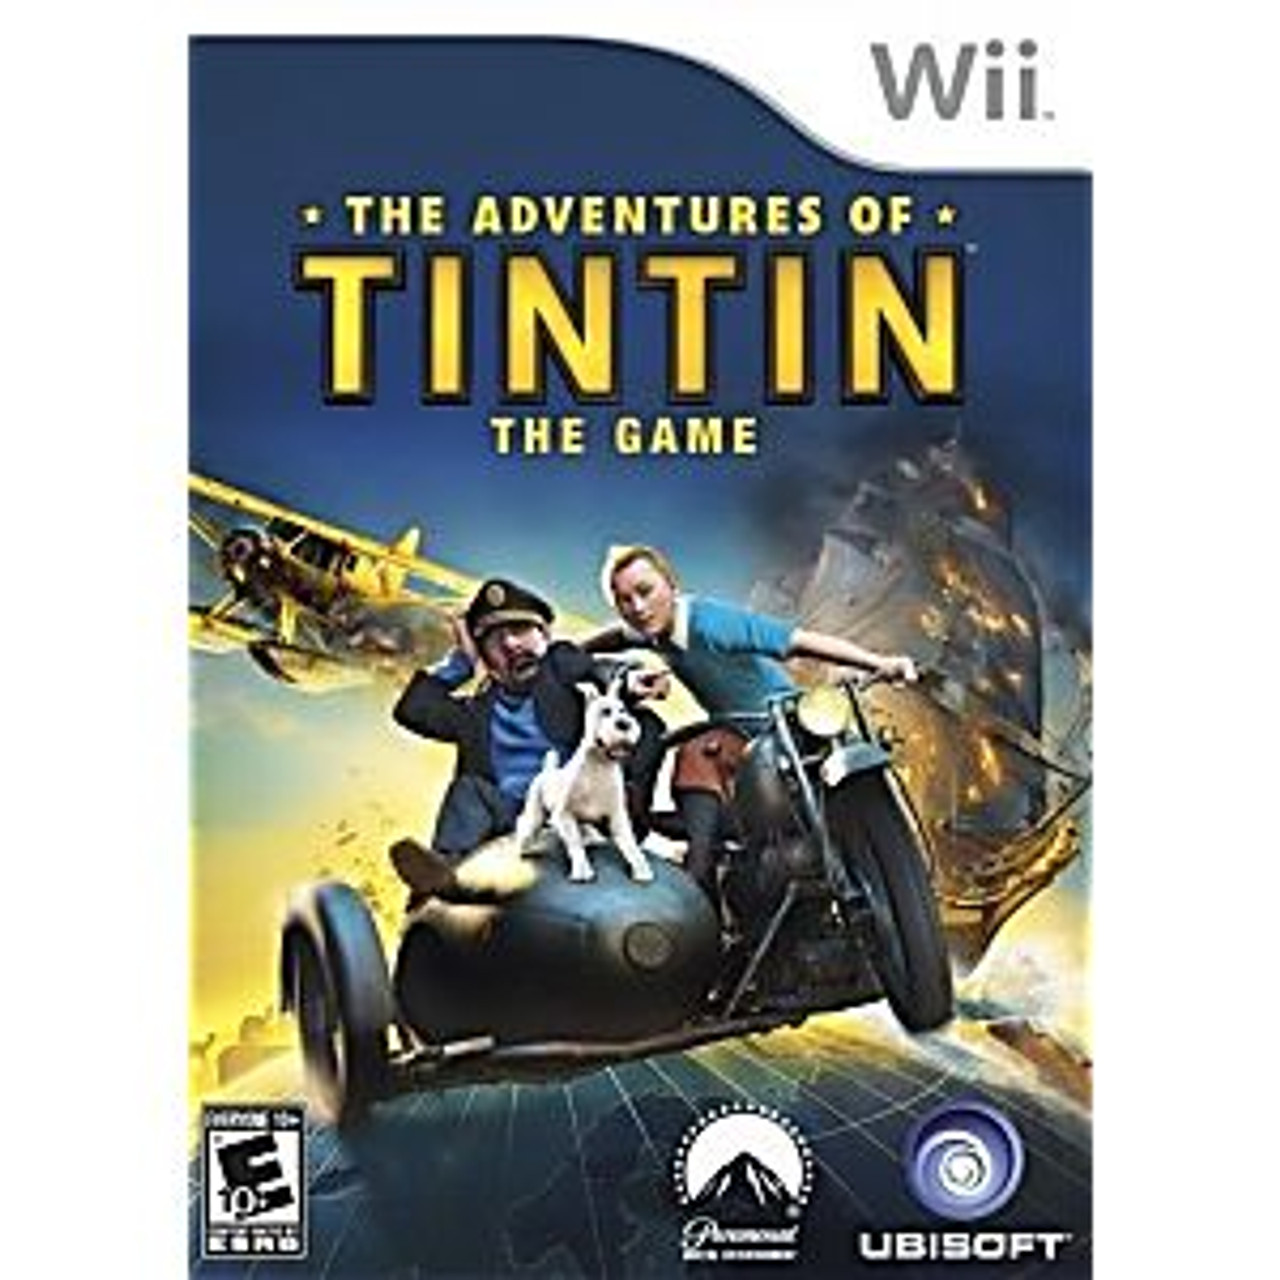 ADVENTURES OF TINTIN: THE GAME - WII